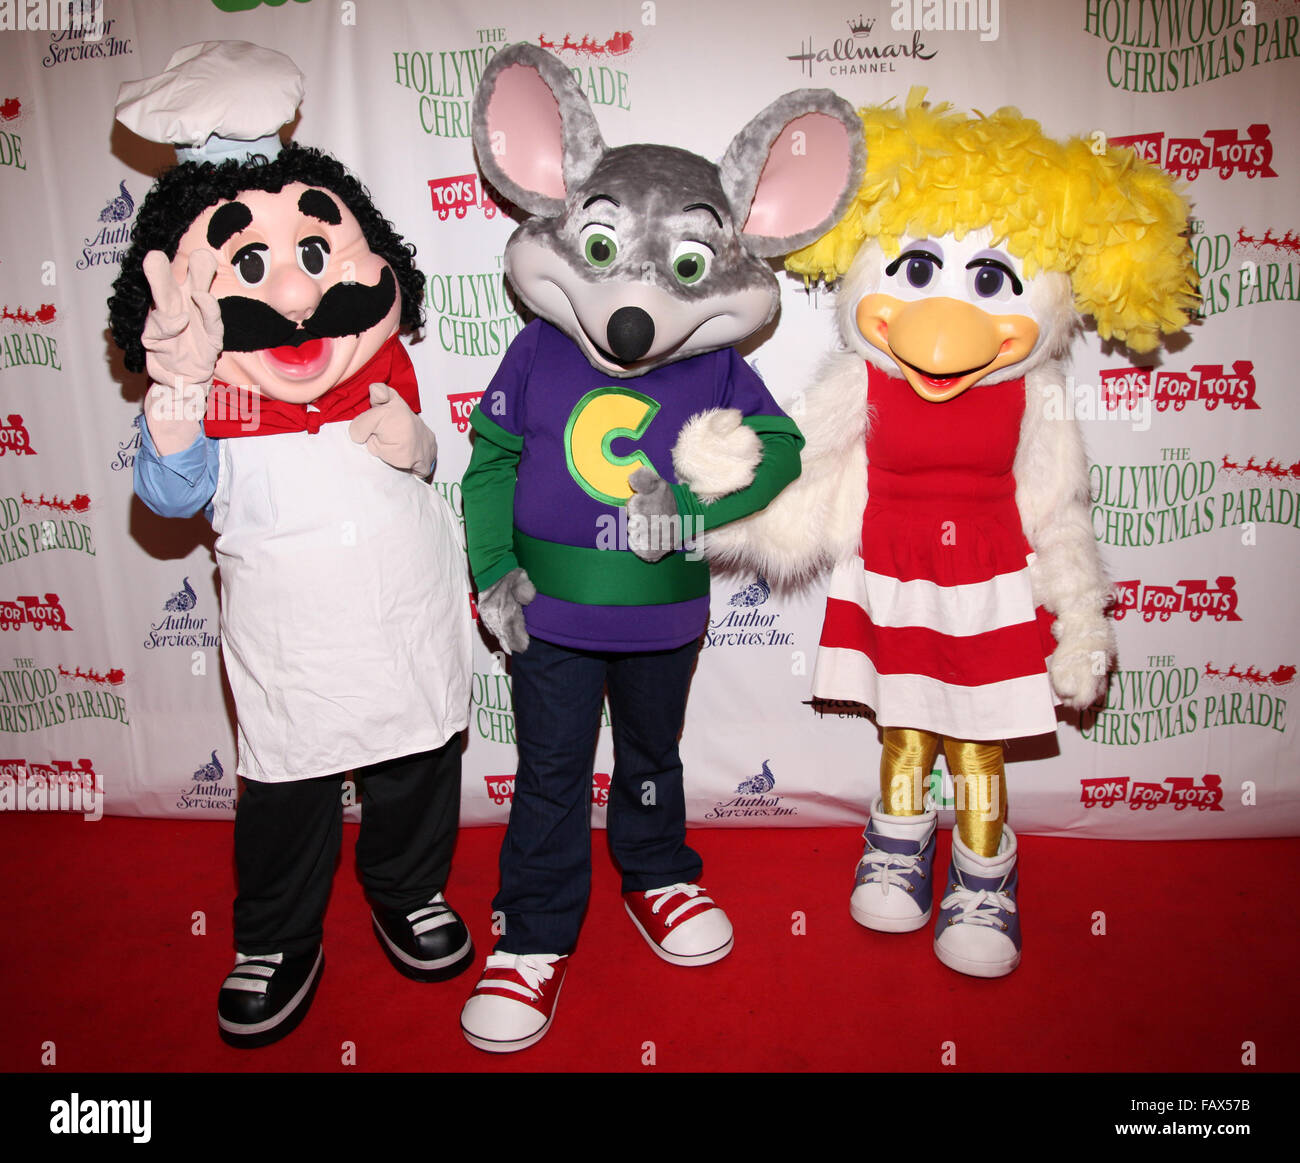 Chuck E Cheese Christmas.Celebrities Attend The 84th Annual Hollywood Christmas